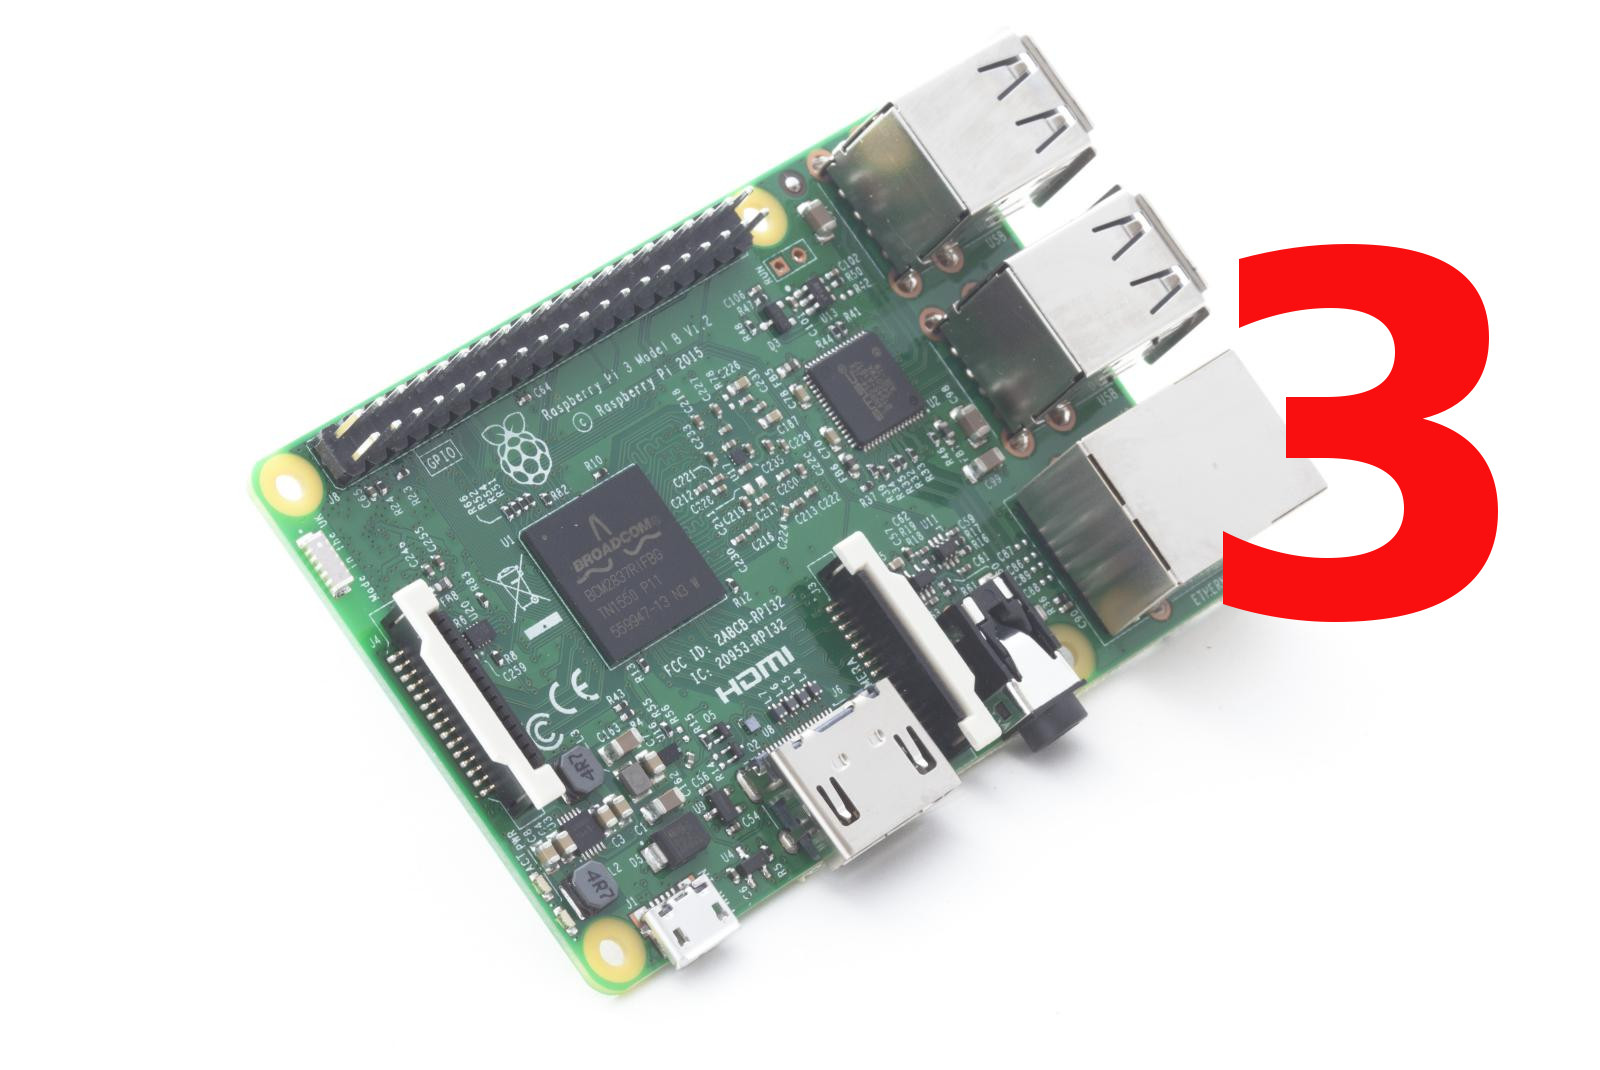 raspberry-pi-3-modelb-2016-blog-header_1600